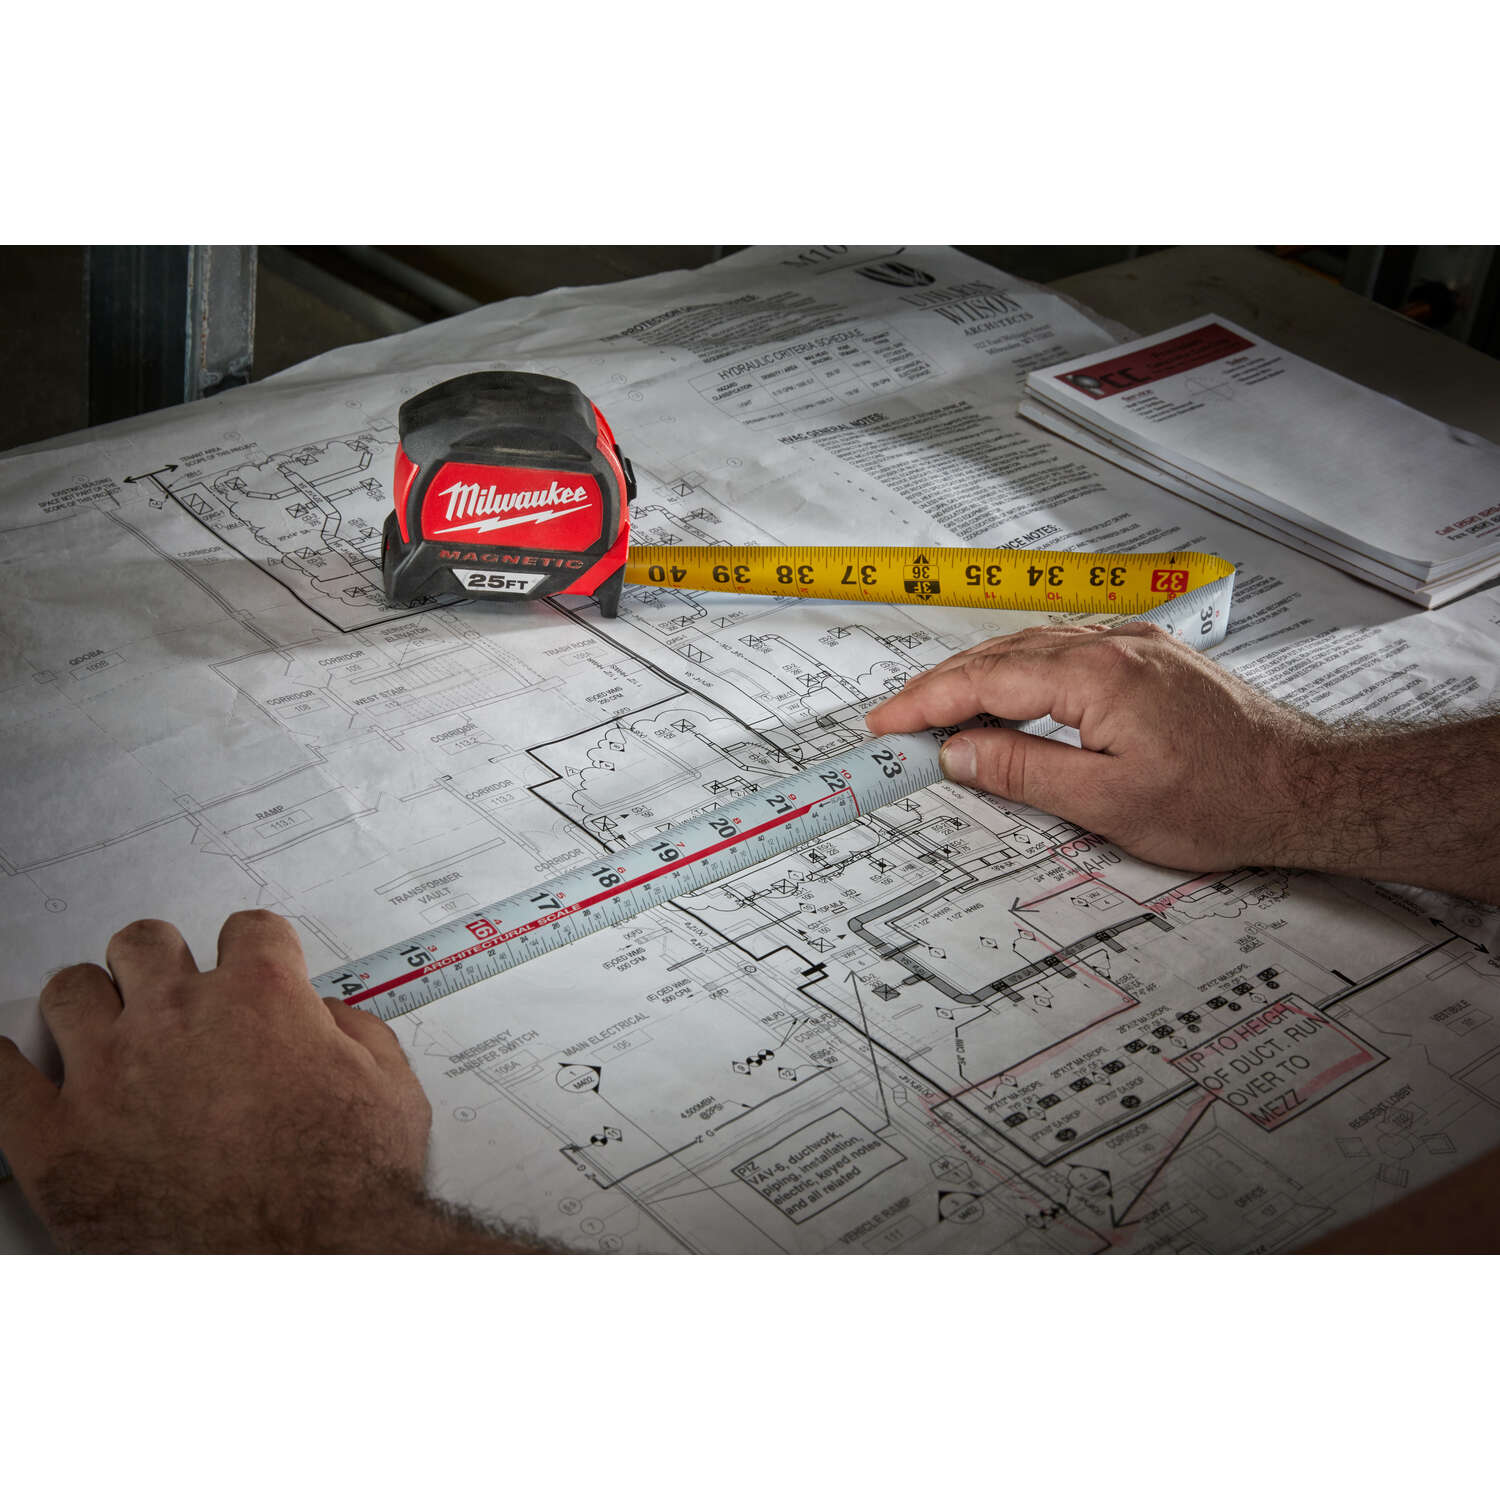 Milwaukee  25 ft. L x 1.83 in. W Magnetic Tape Measure  Red  1 pk